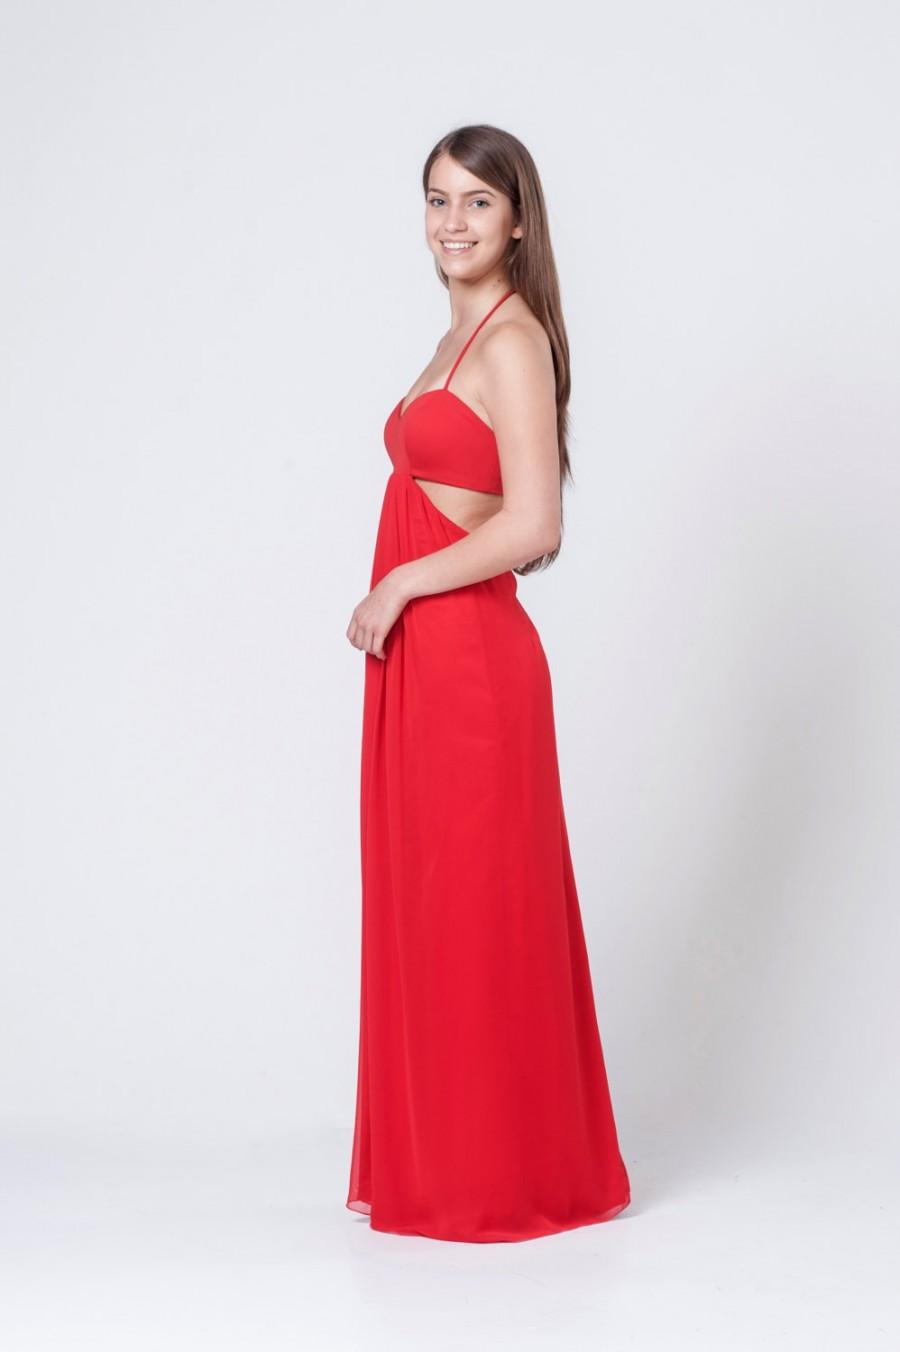 Свадьба - Evening Dress, Red Woman Dress, Party Long Dress, Bridesmaid Dress, Chiffon Dress, Sleeveless Dress, Prom Gown, Chiffon Gown, Flowy Dress